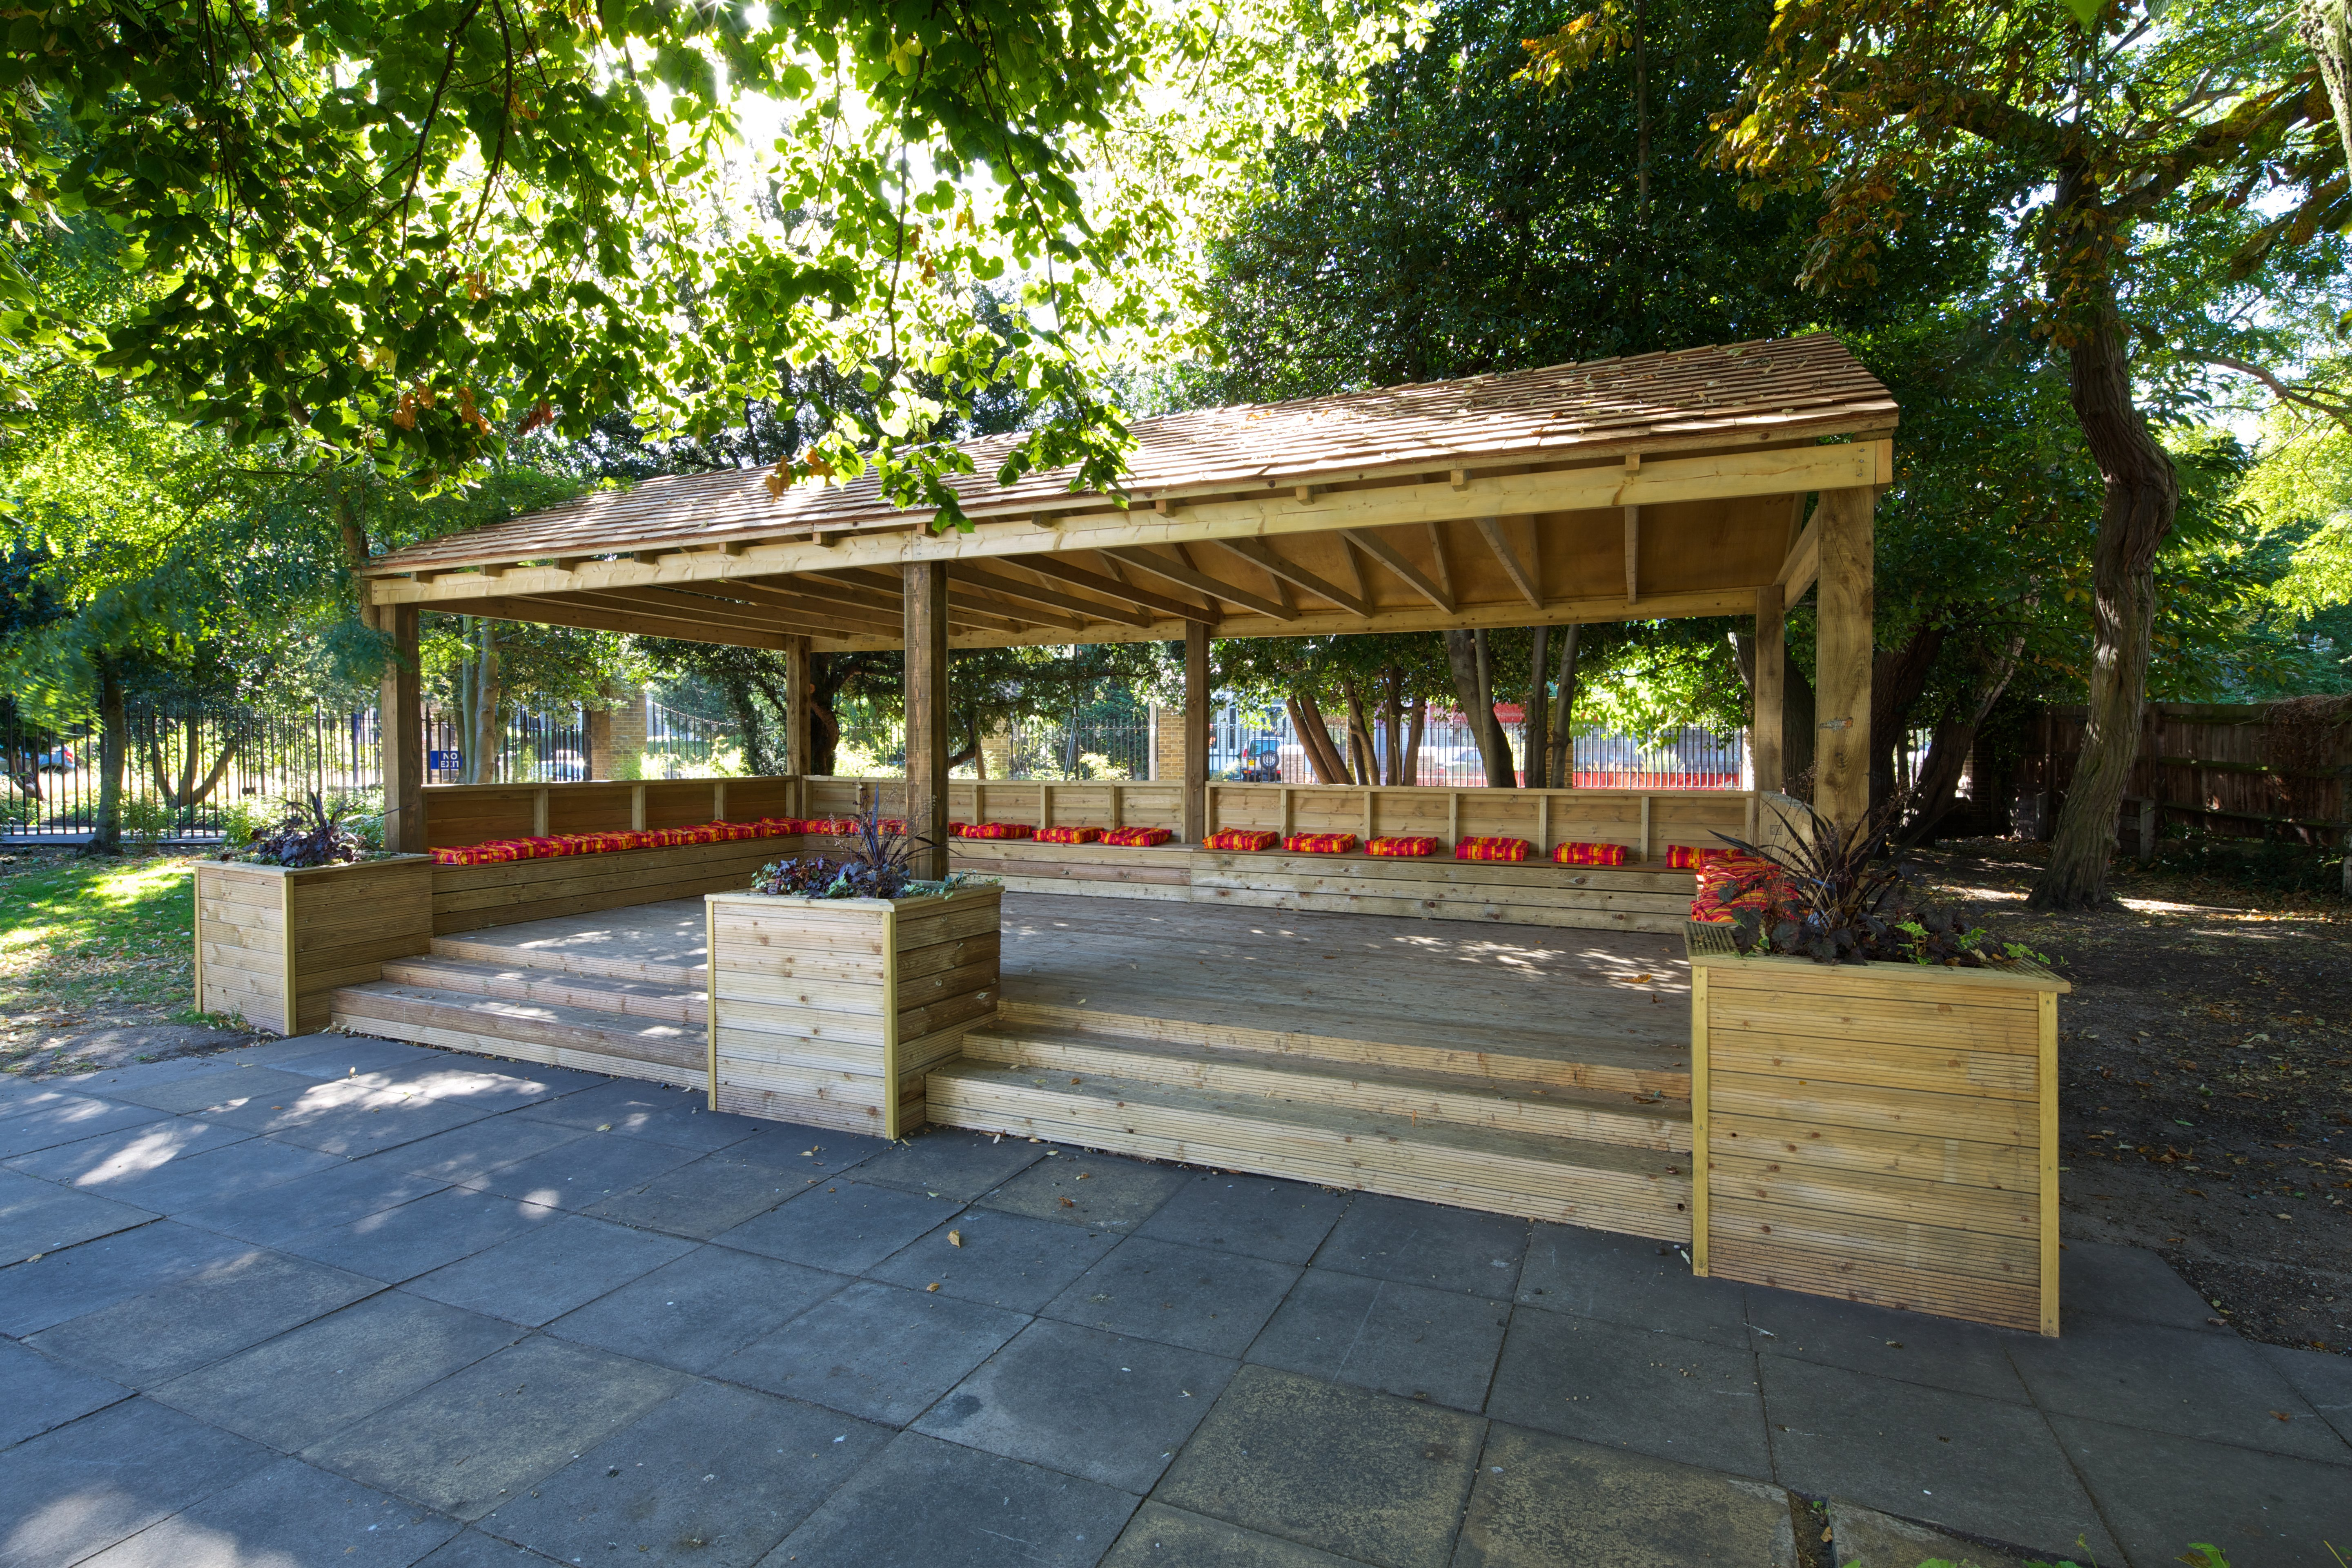 Outdoor Classroom, Shelter, Playground